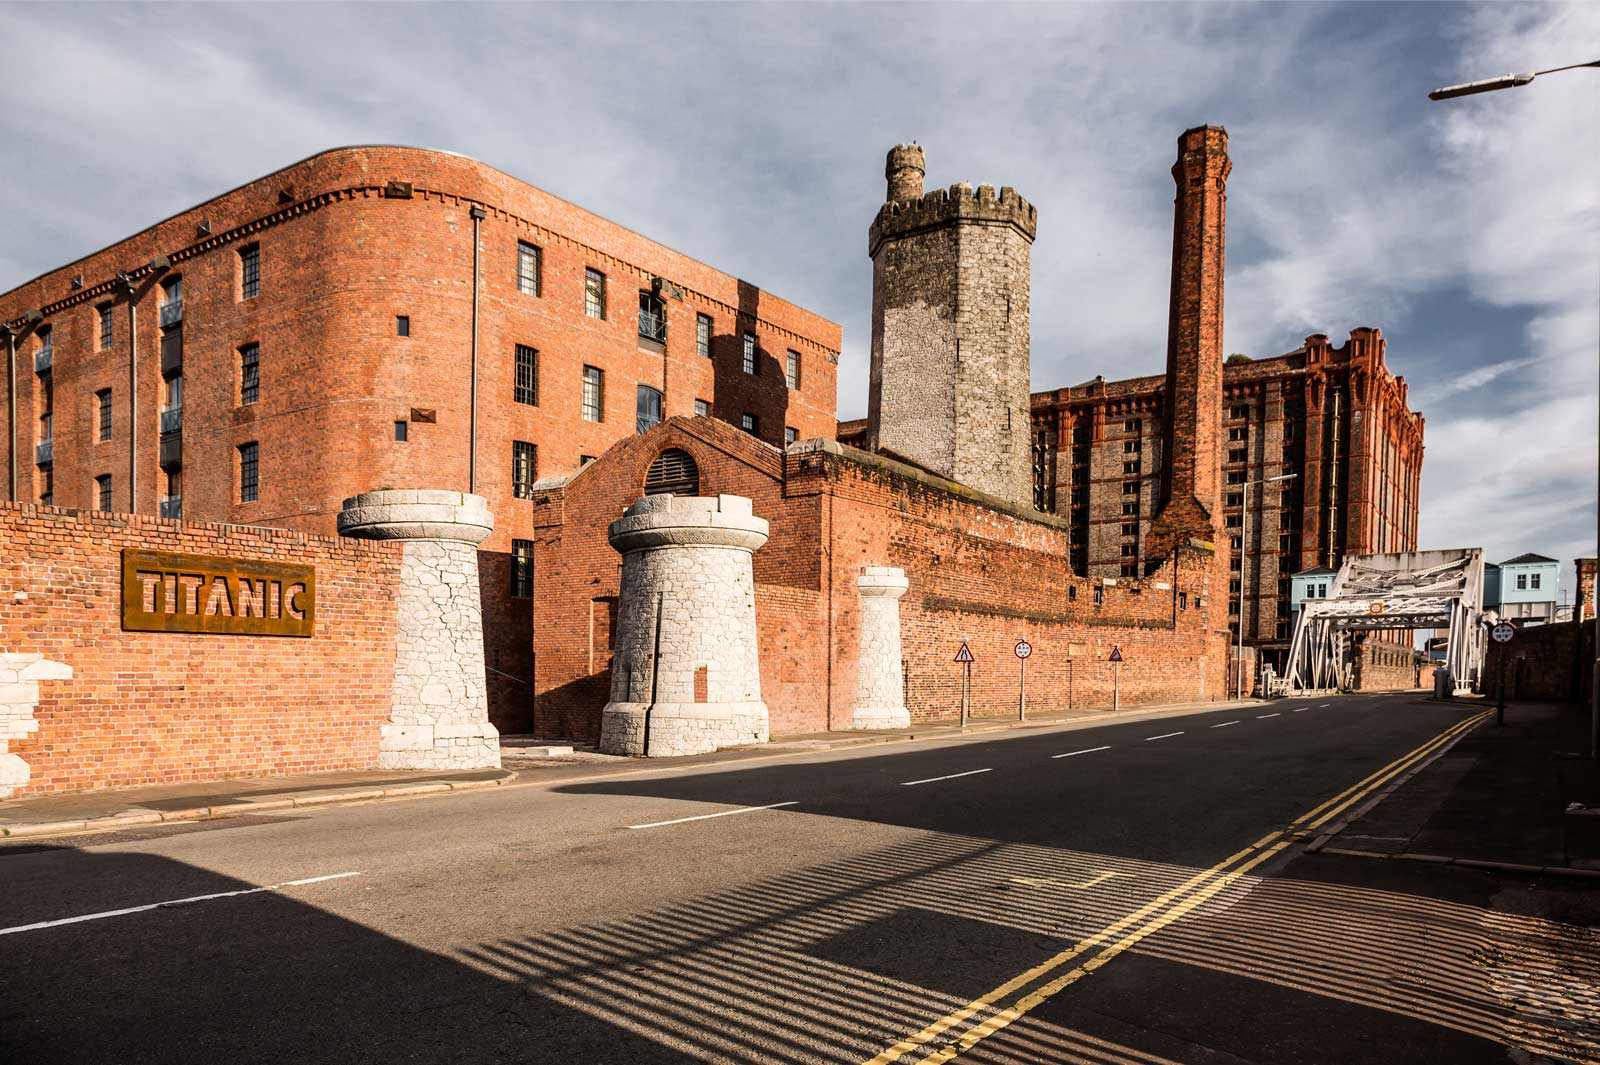 The Stanley Dock